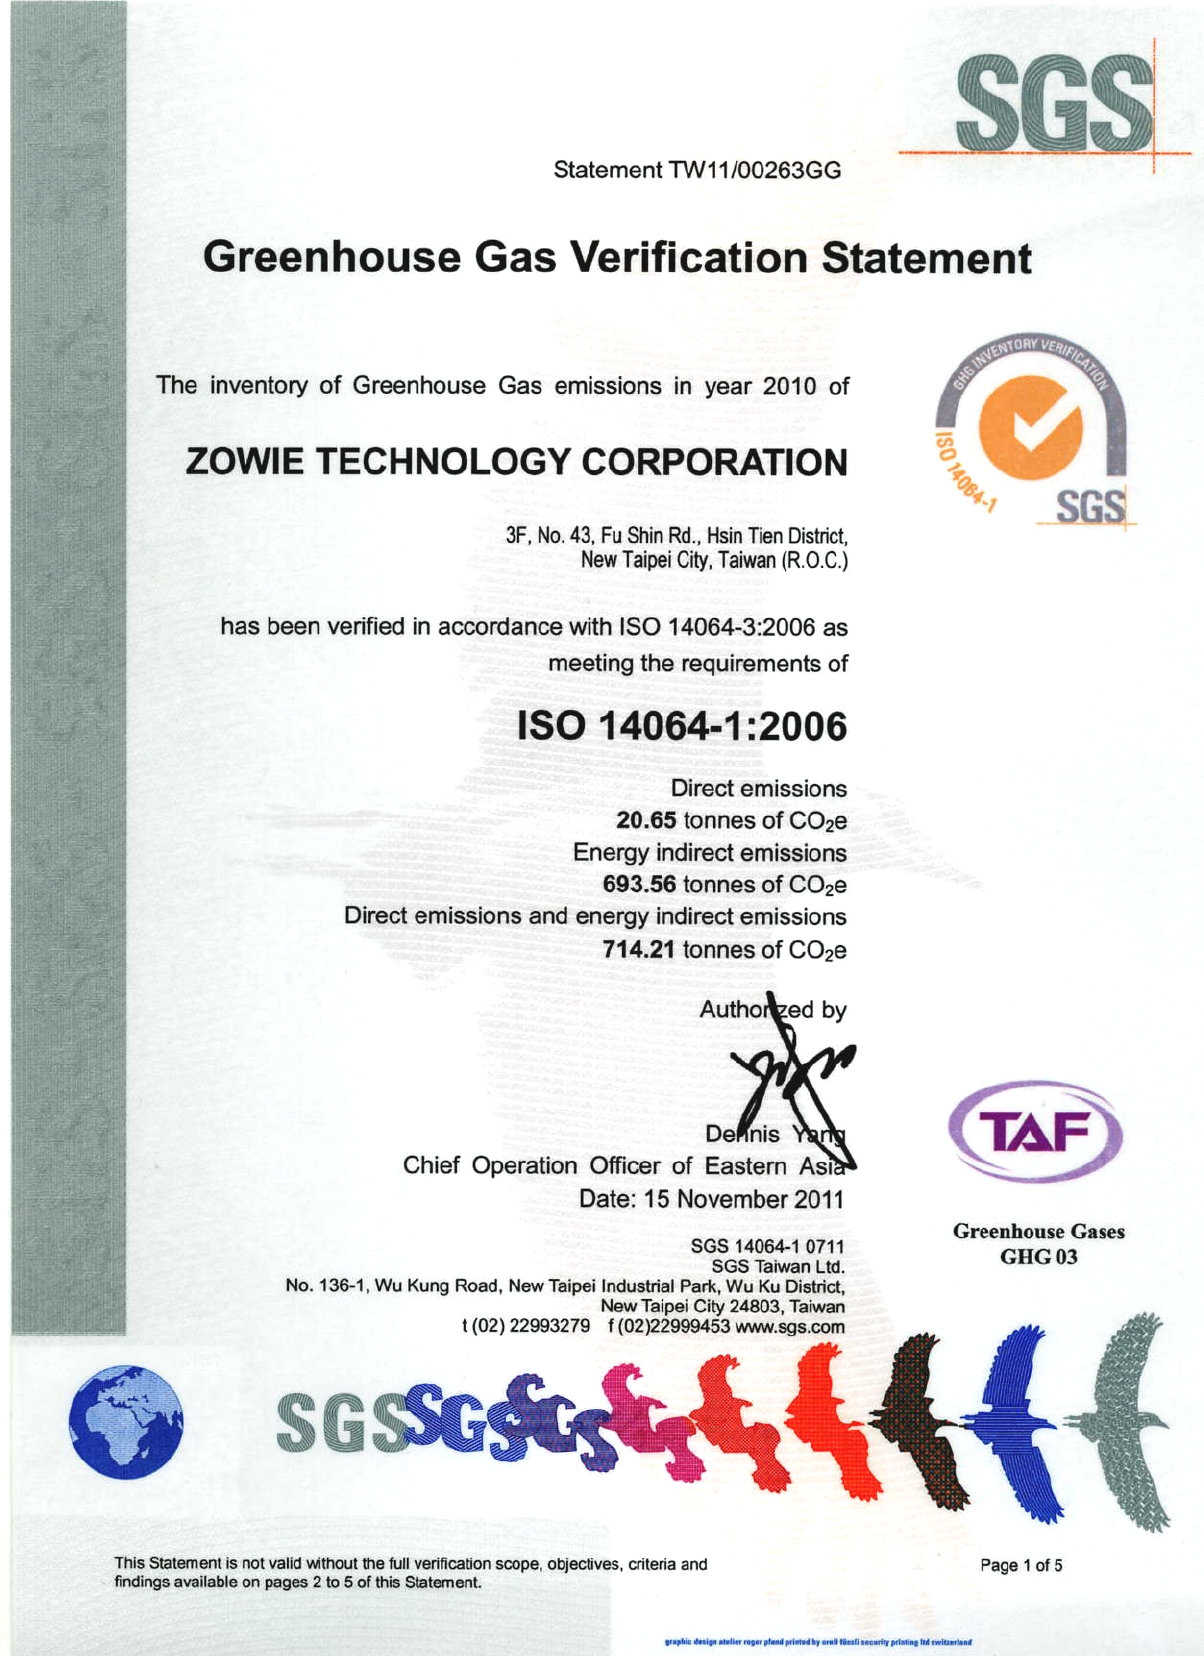 Zowie Technology Corp. passed the SGS ISO 14064-3 certification and obtained the Greenhouse Gas Verification statement.